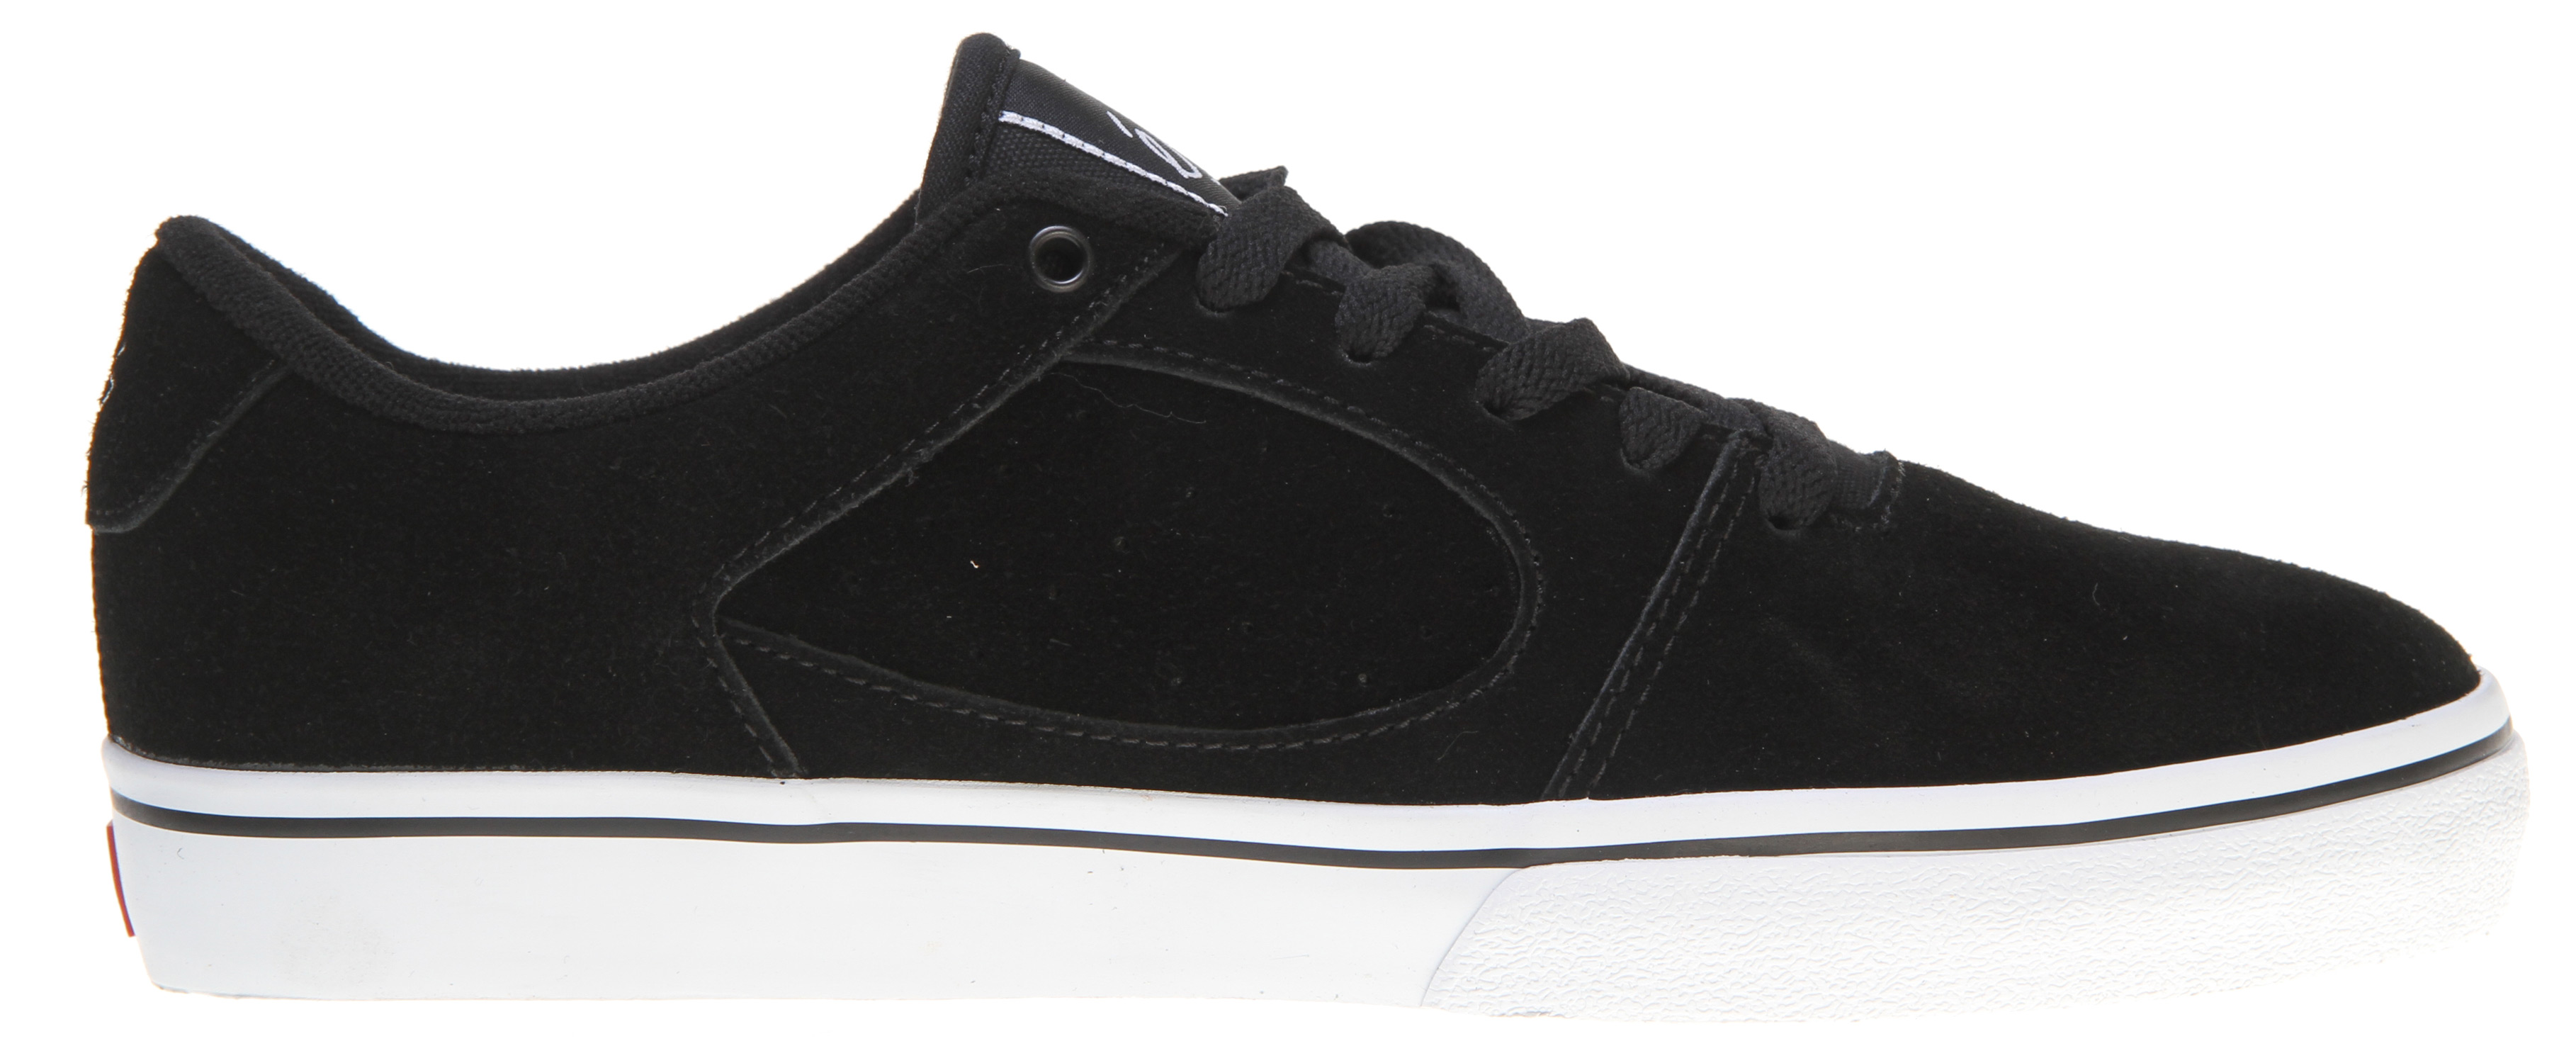 Skateboard Key Features of the ES Square Two Skate Shoes: Suede, leather or synthetic upper material Thin padded tongue and collar for comfort One-piece toe cap Direct poured full length polyurethane midsole STI Foam Lite level 1 footbed Vulcanized rubber outsole - $39.95